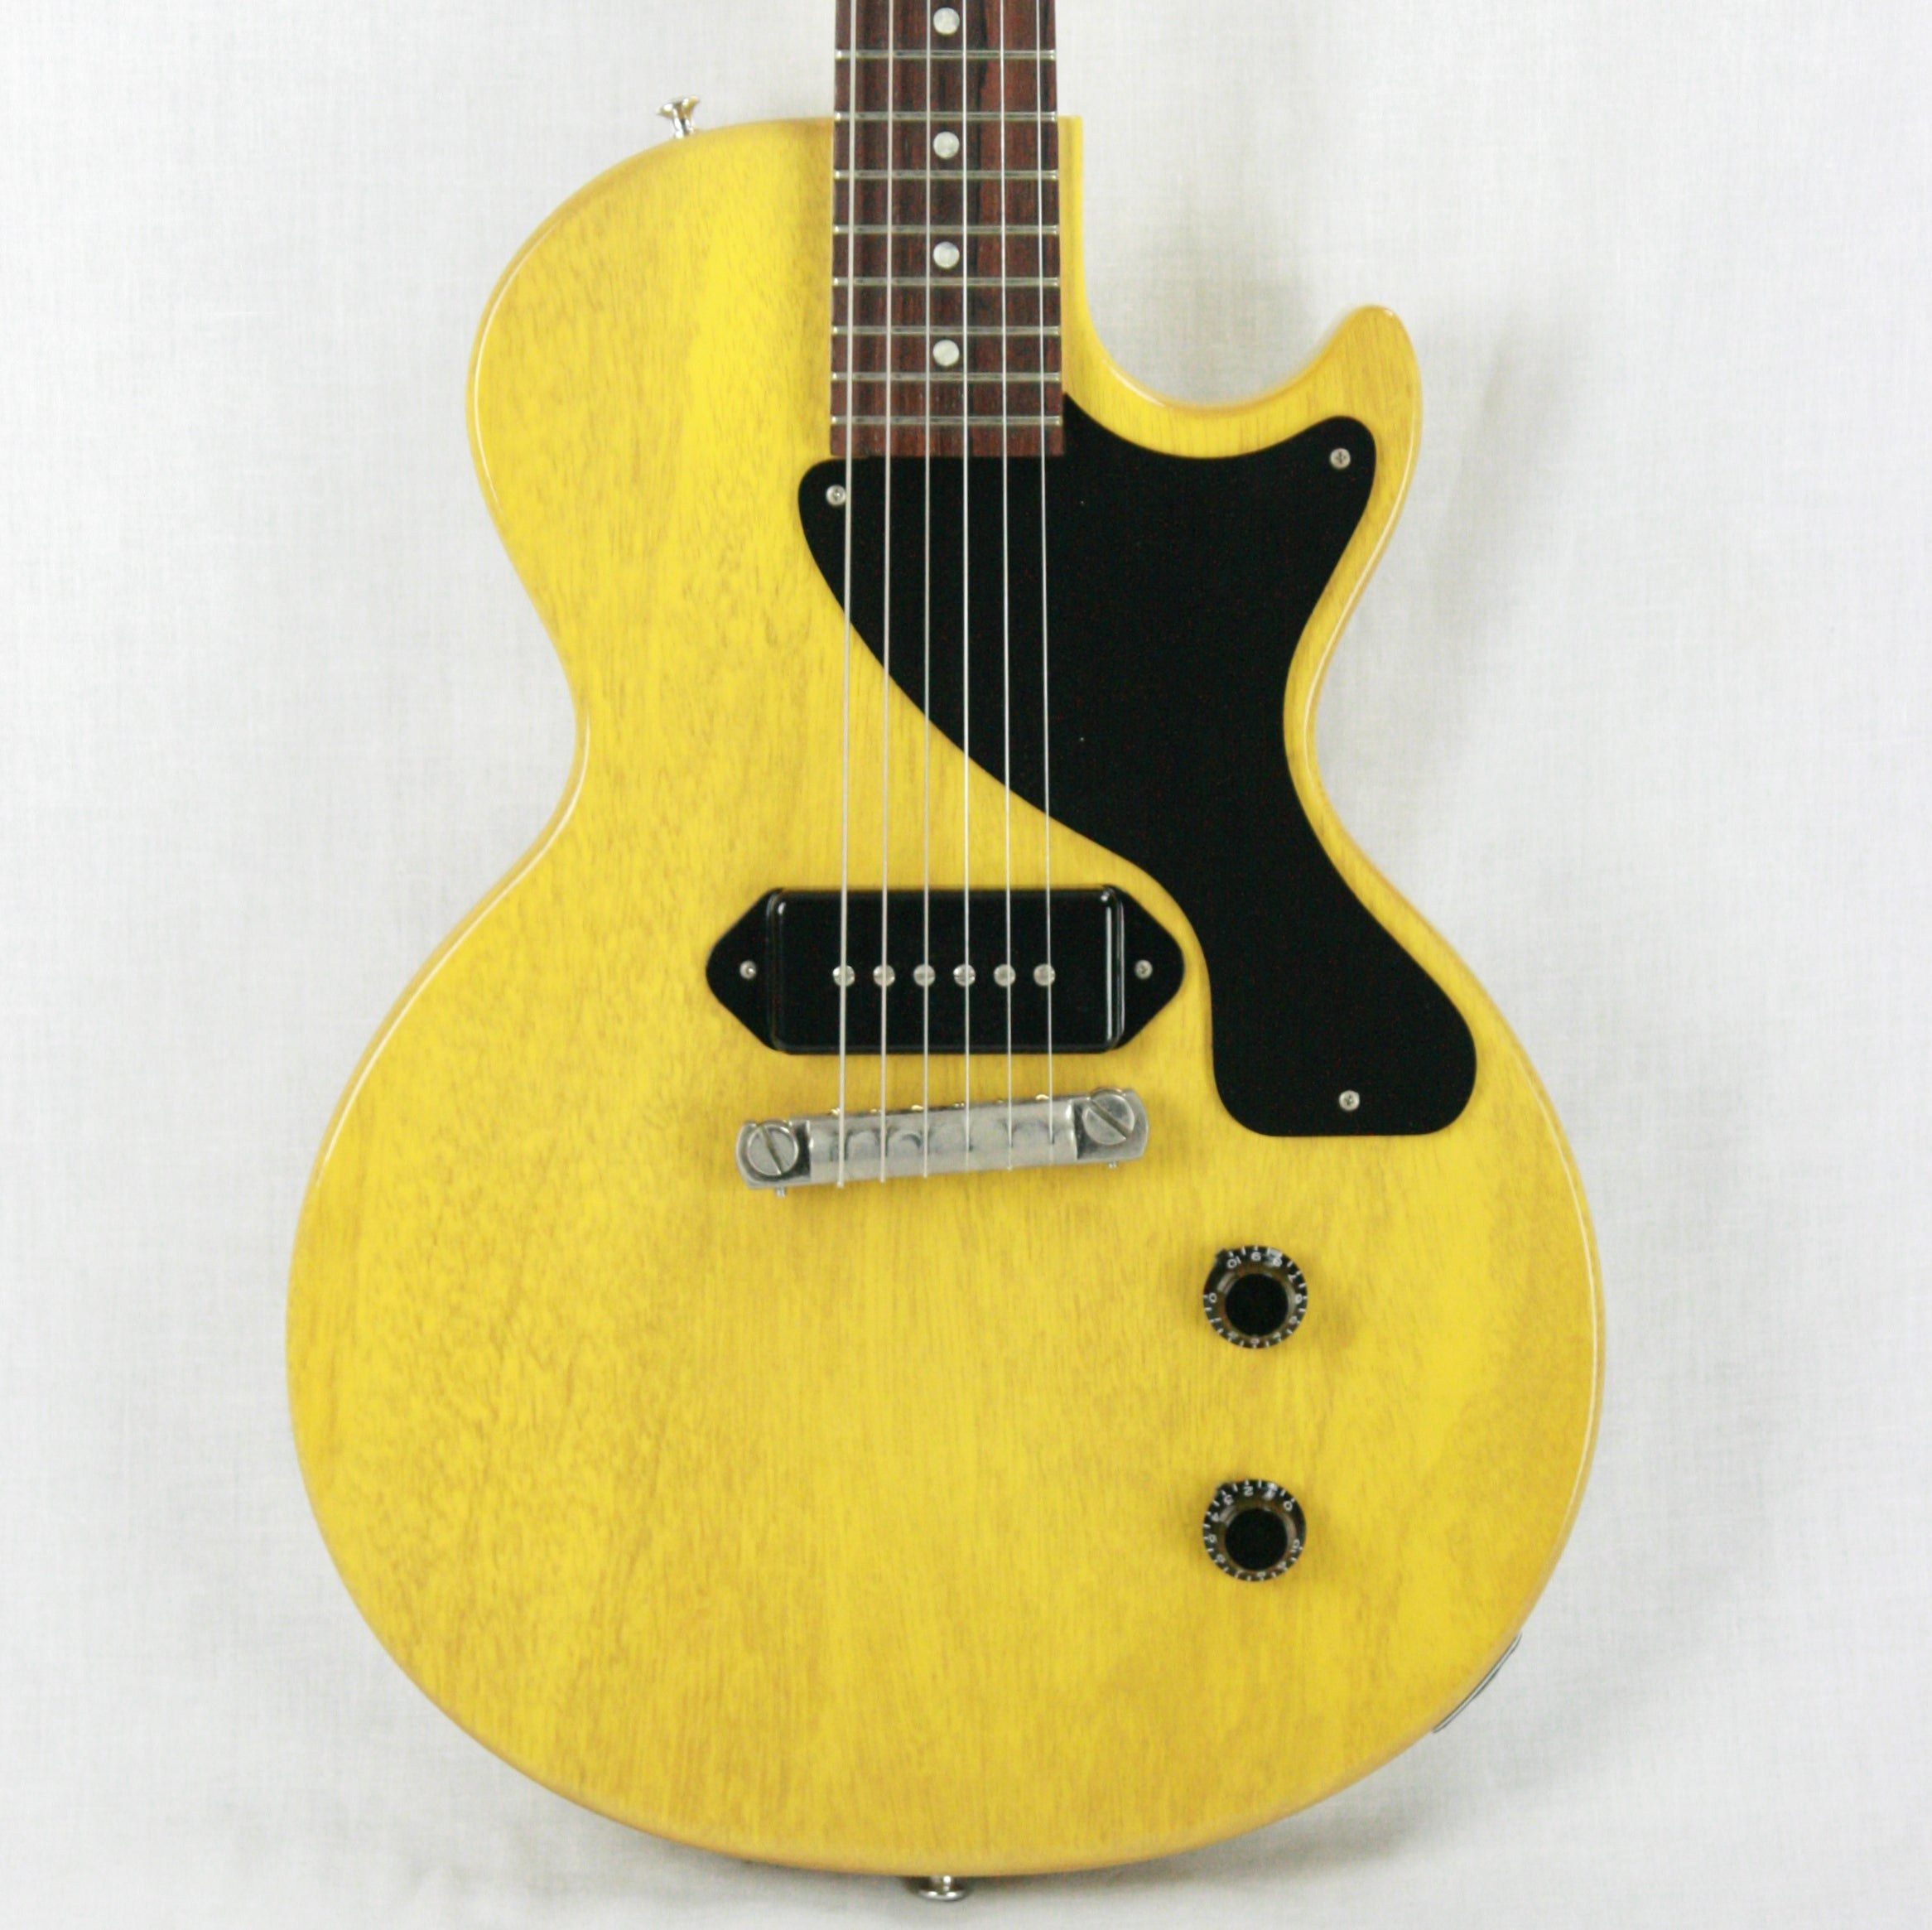 2002 Gibson 1957 Les Paul TV Yellow Jr. Custom Shop! LP Junior 57 Reissue! P90 Single Cutaway! Historic